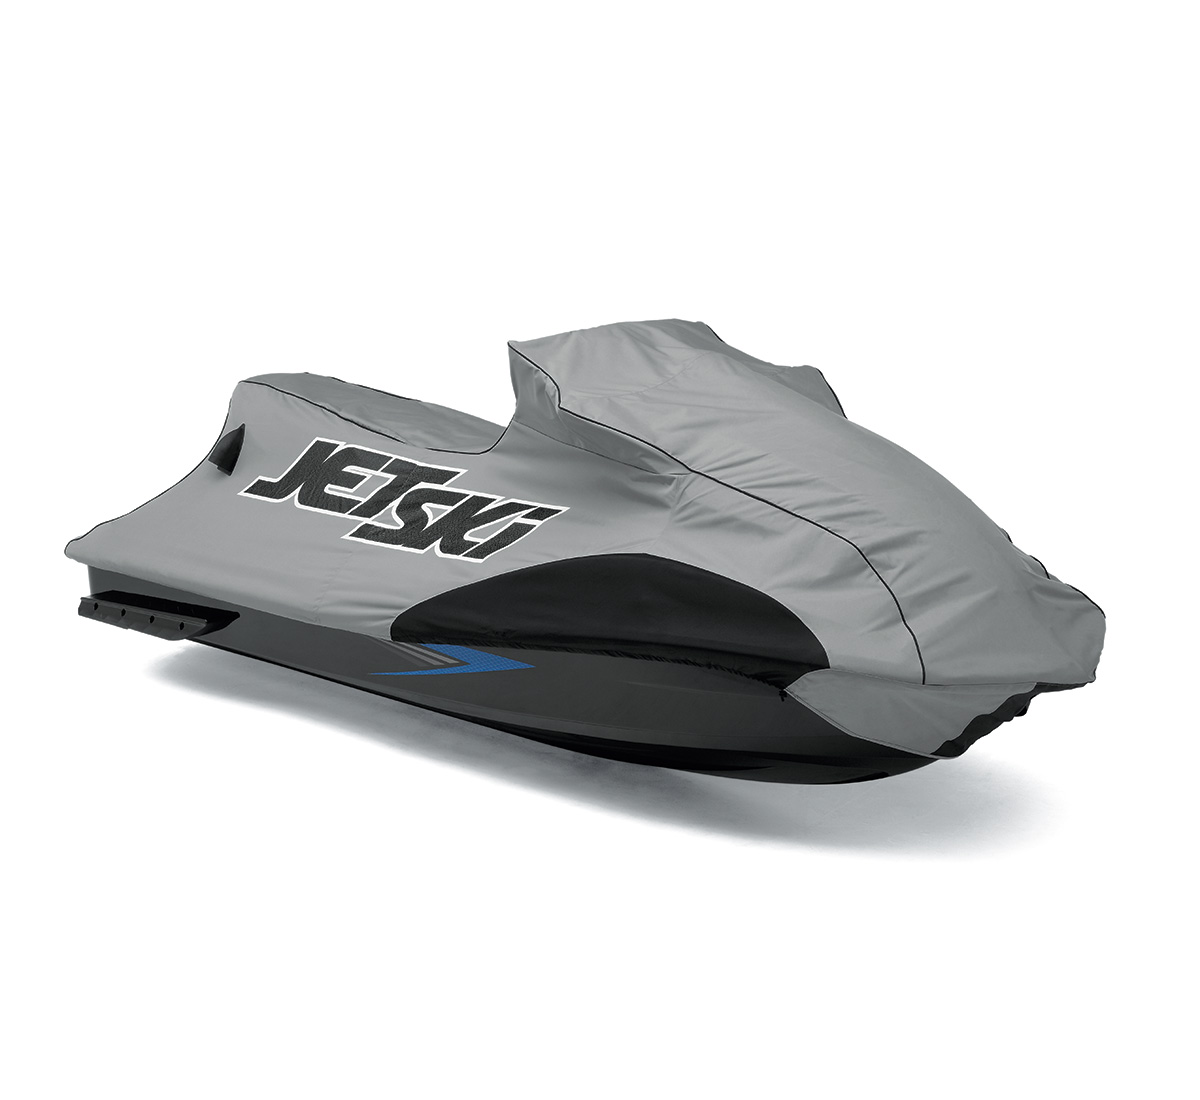 hight resolution of vacu hold jet ski 300 cover